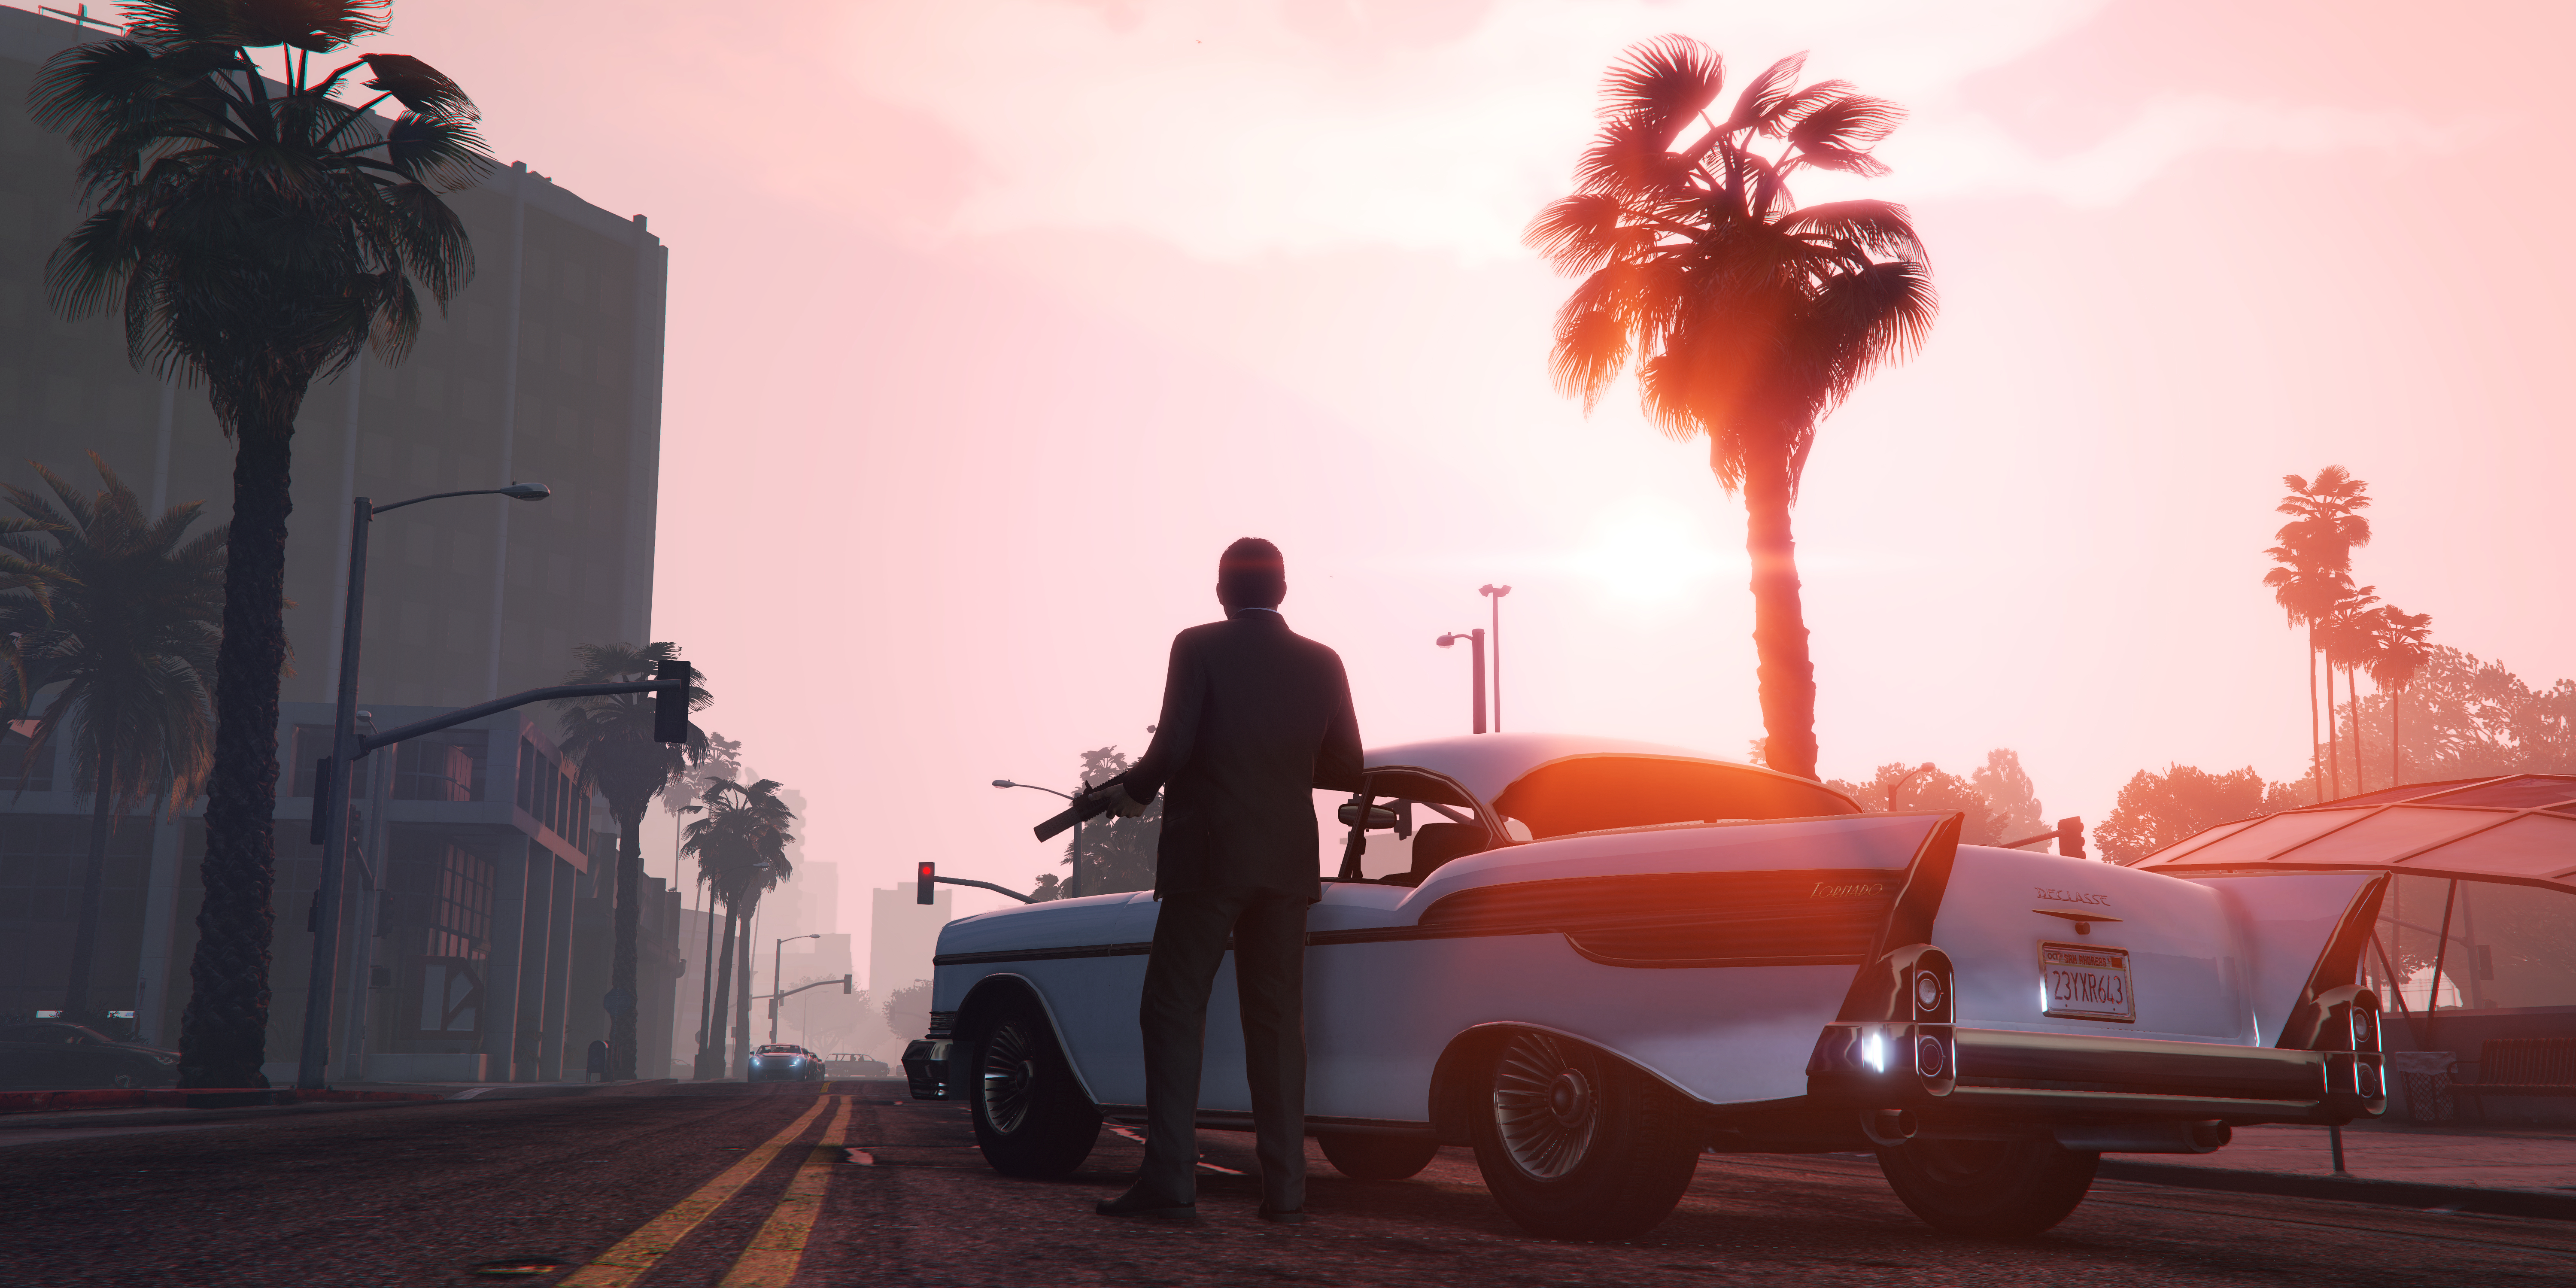 GTA V Mod Enables Seamless Buildings Interiors Without Loading